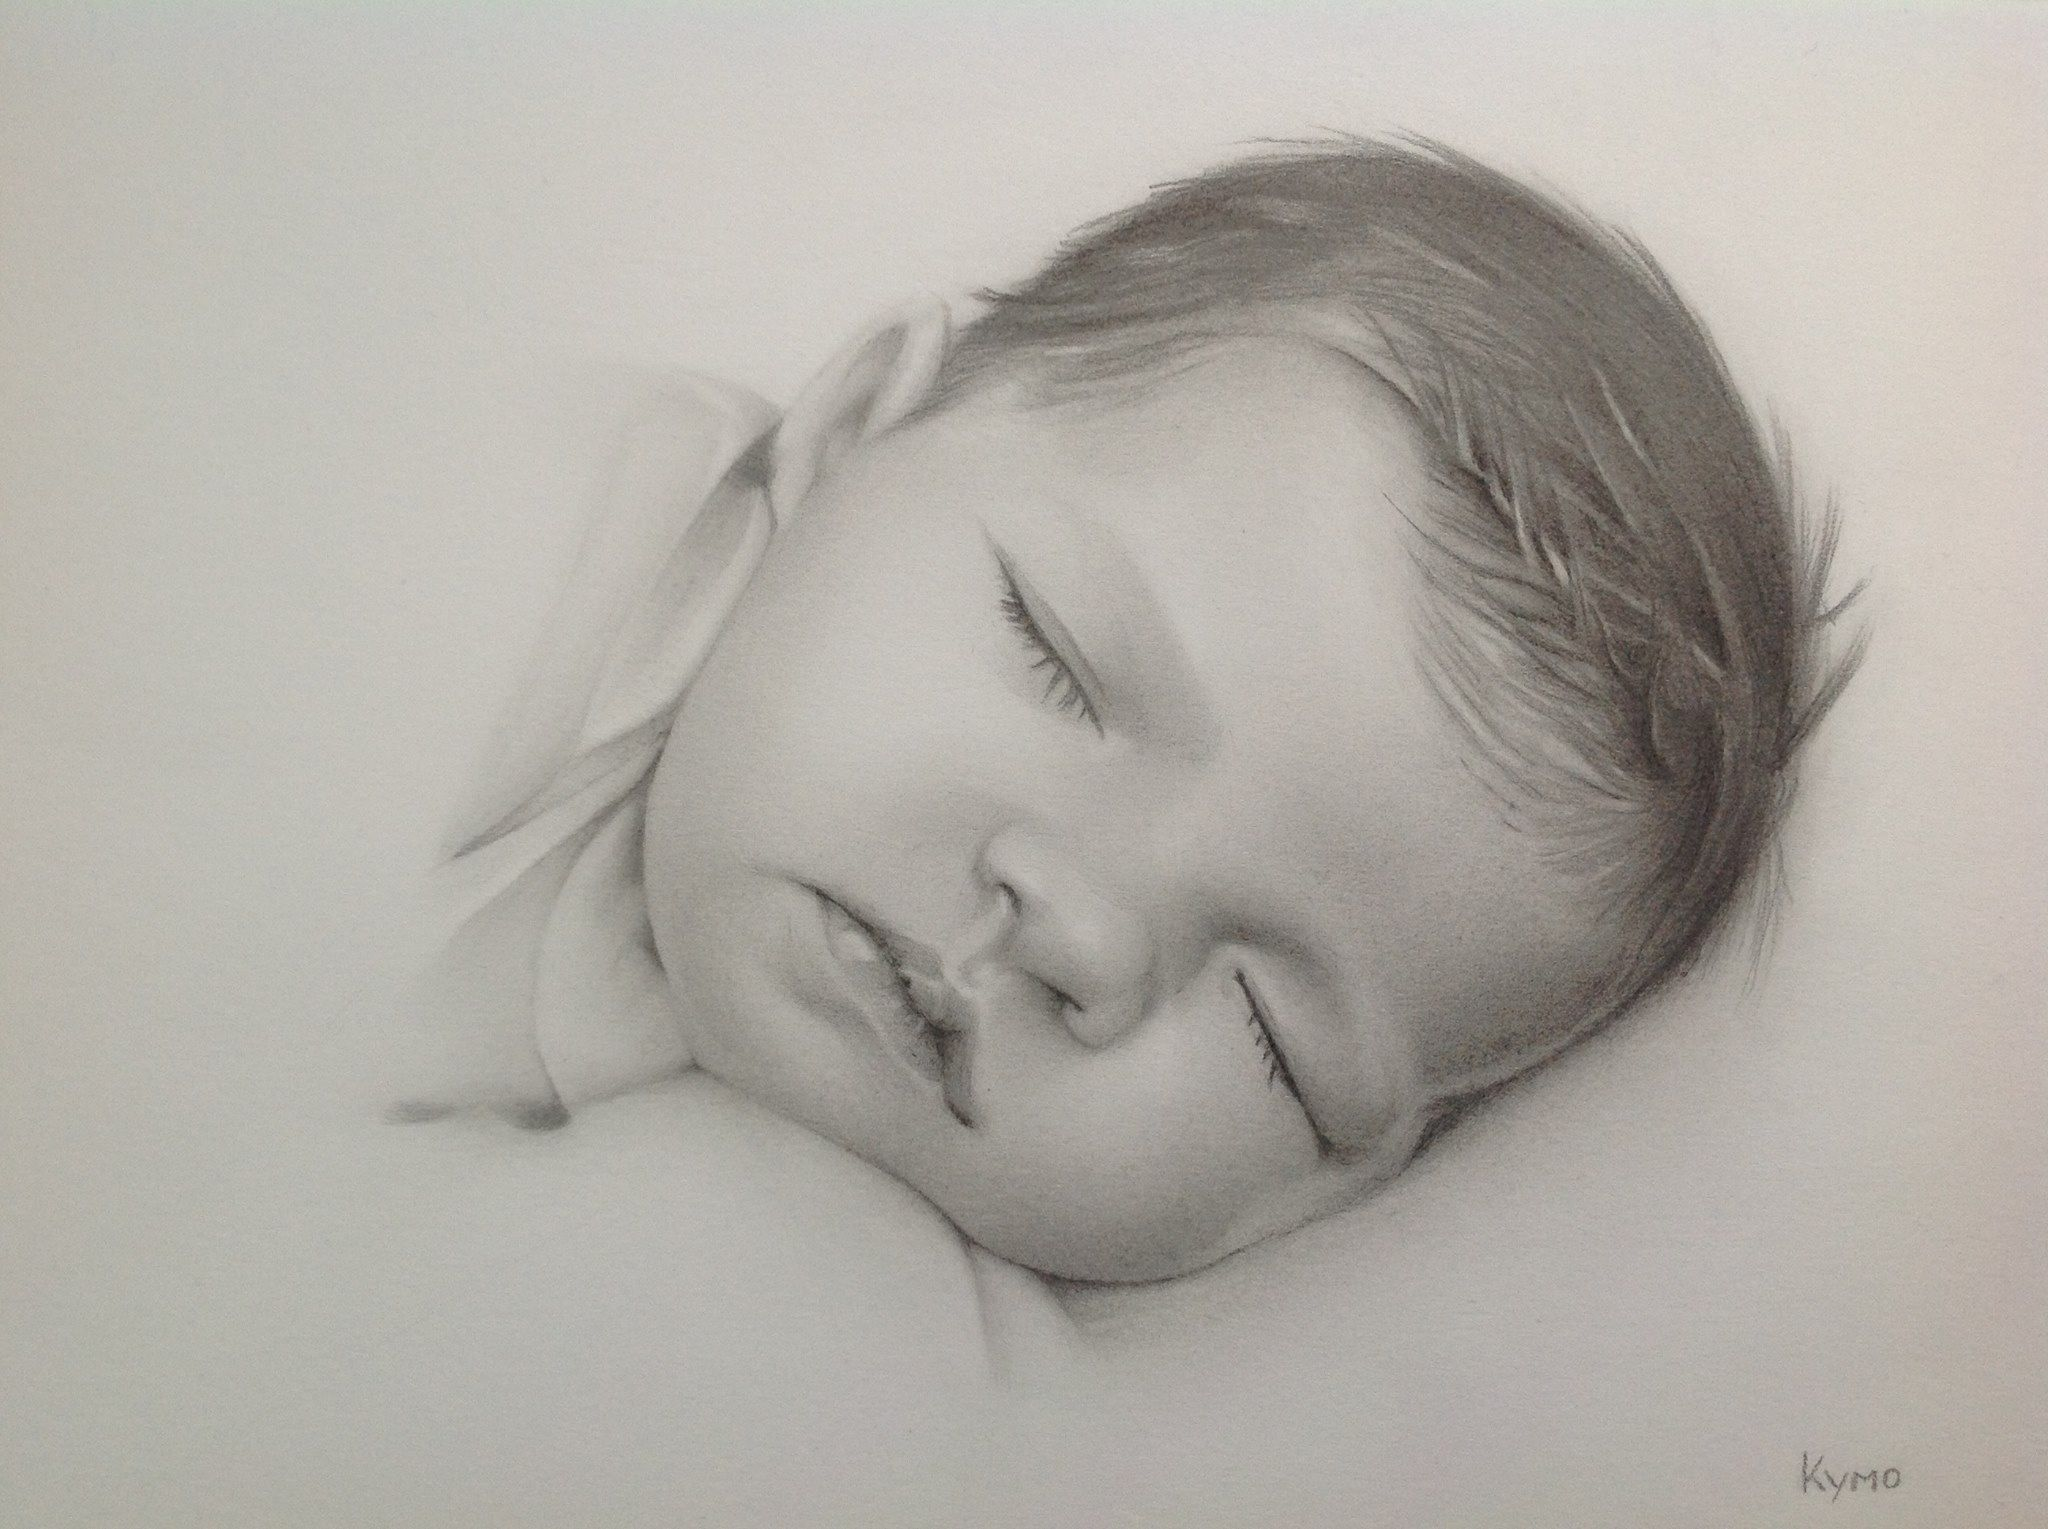 Pencil baby portrait made by kymo art